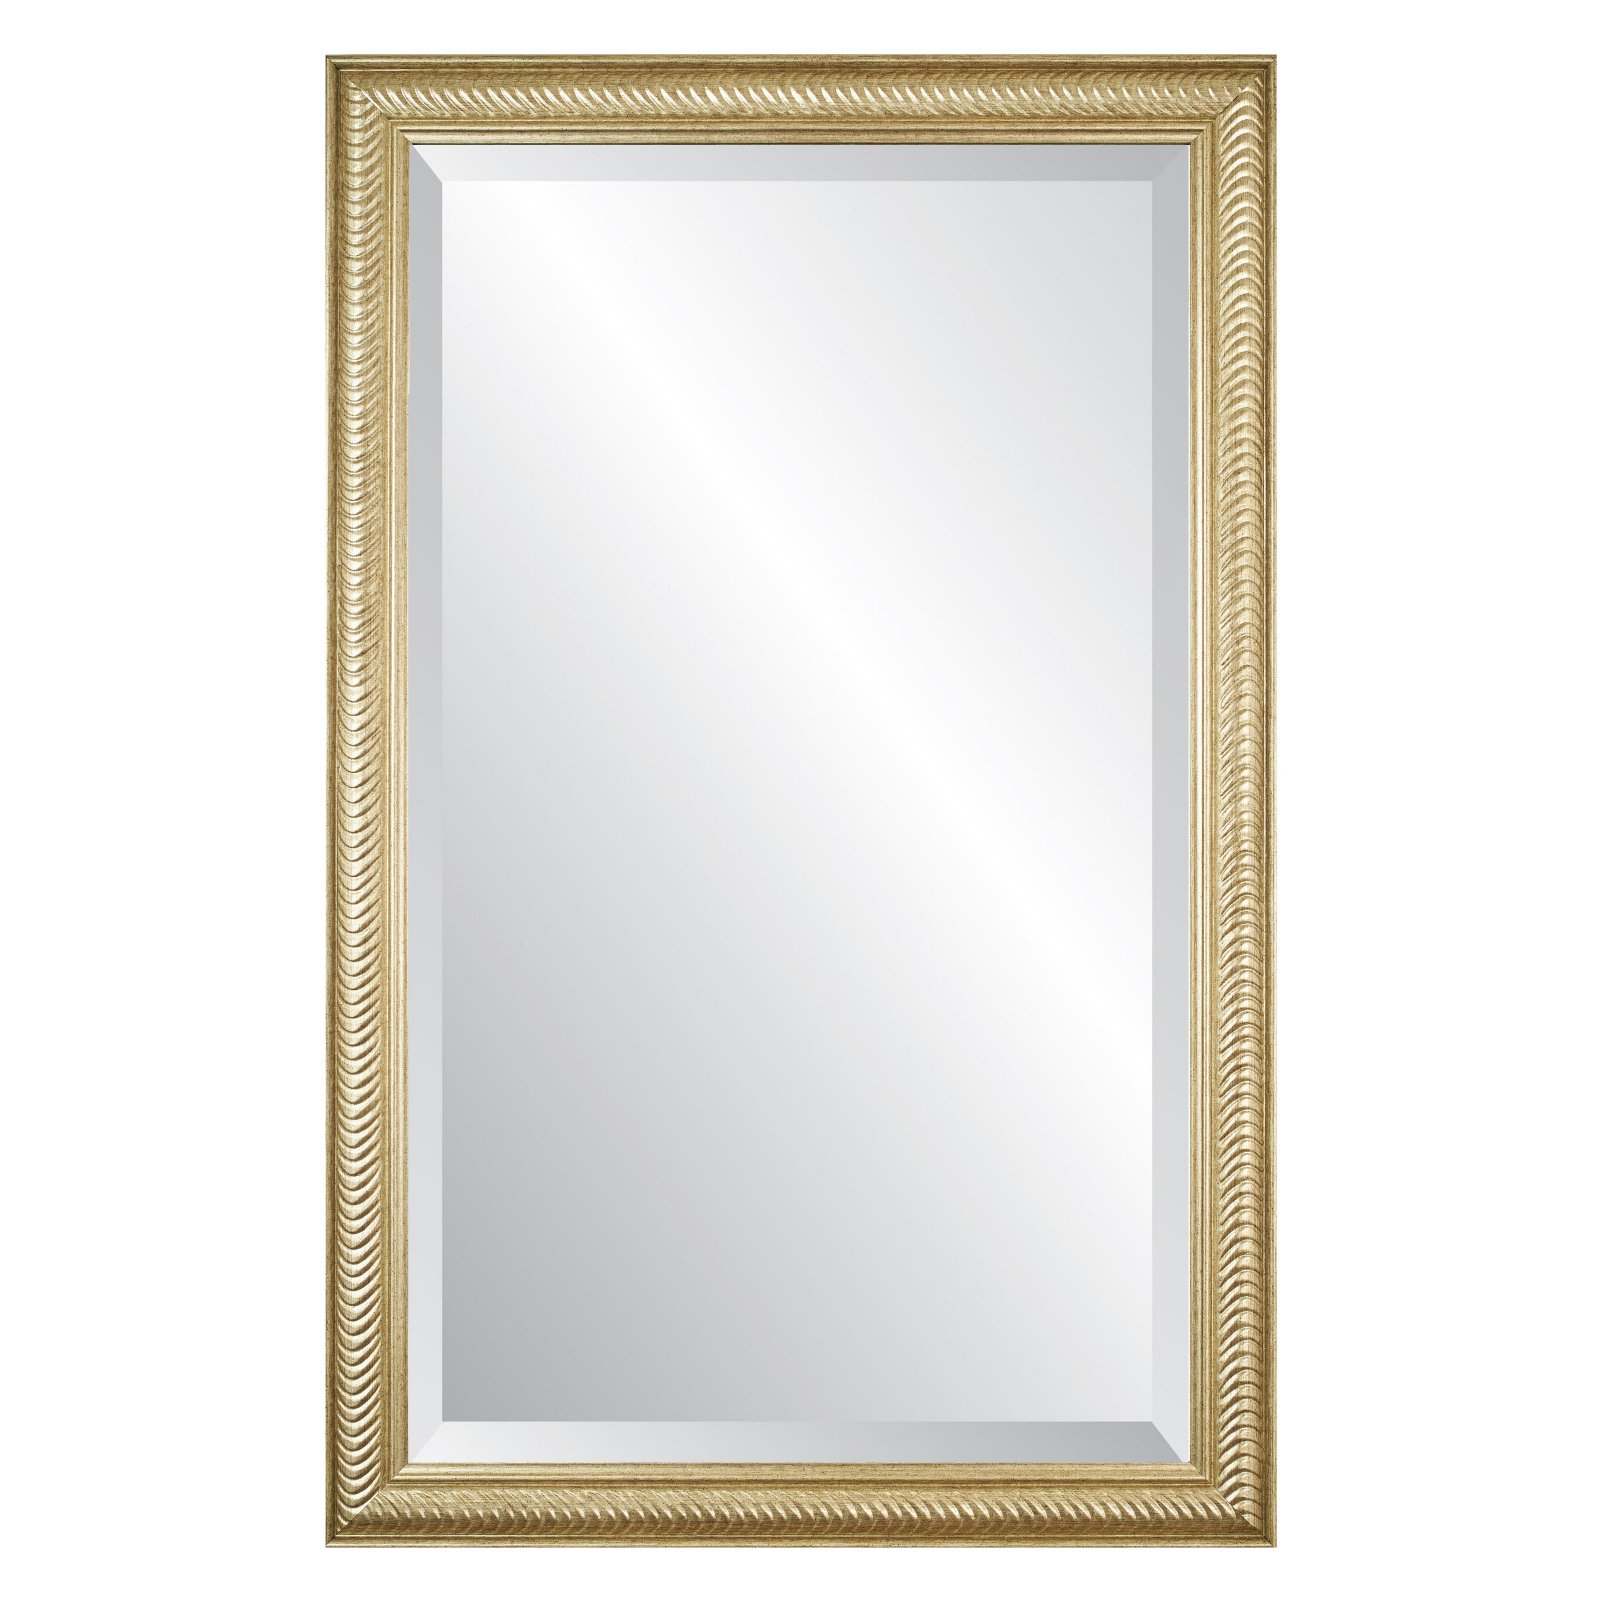 2019 Northend Wall Mirrors Regarding Alpine Wave Wall Mirror – 26w X 41h In (View 5 of 20)